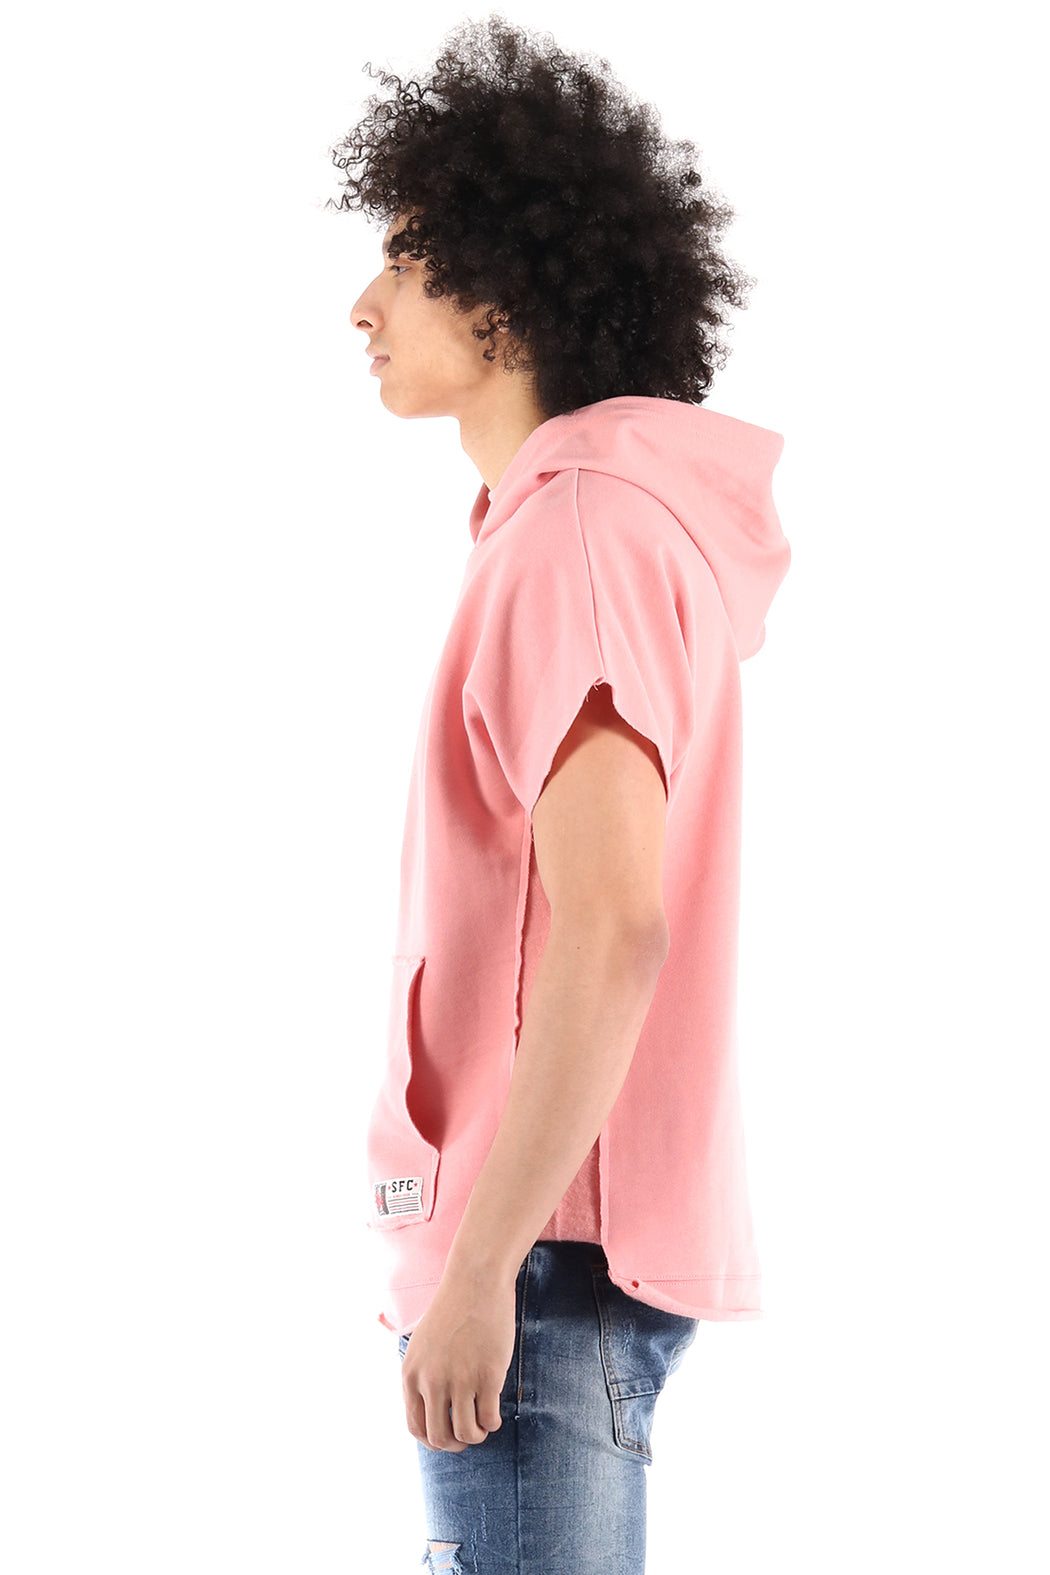 The SQZ Premium Cotton French Terry Oversized Pullover Hoody In Pink (HF-6020-Pink)